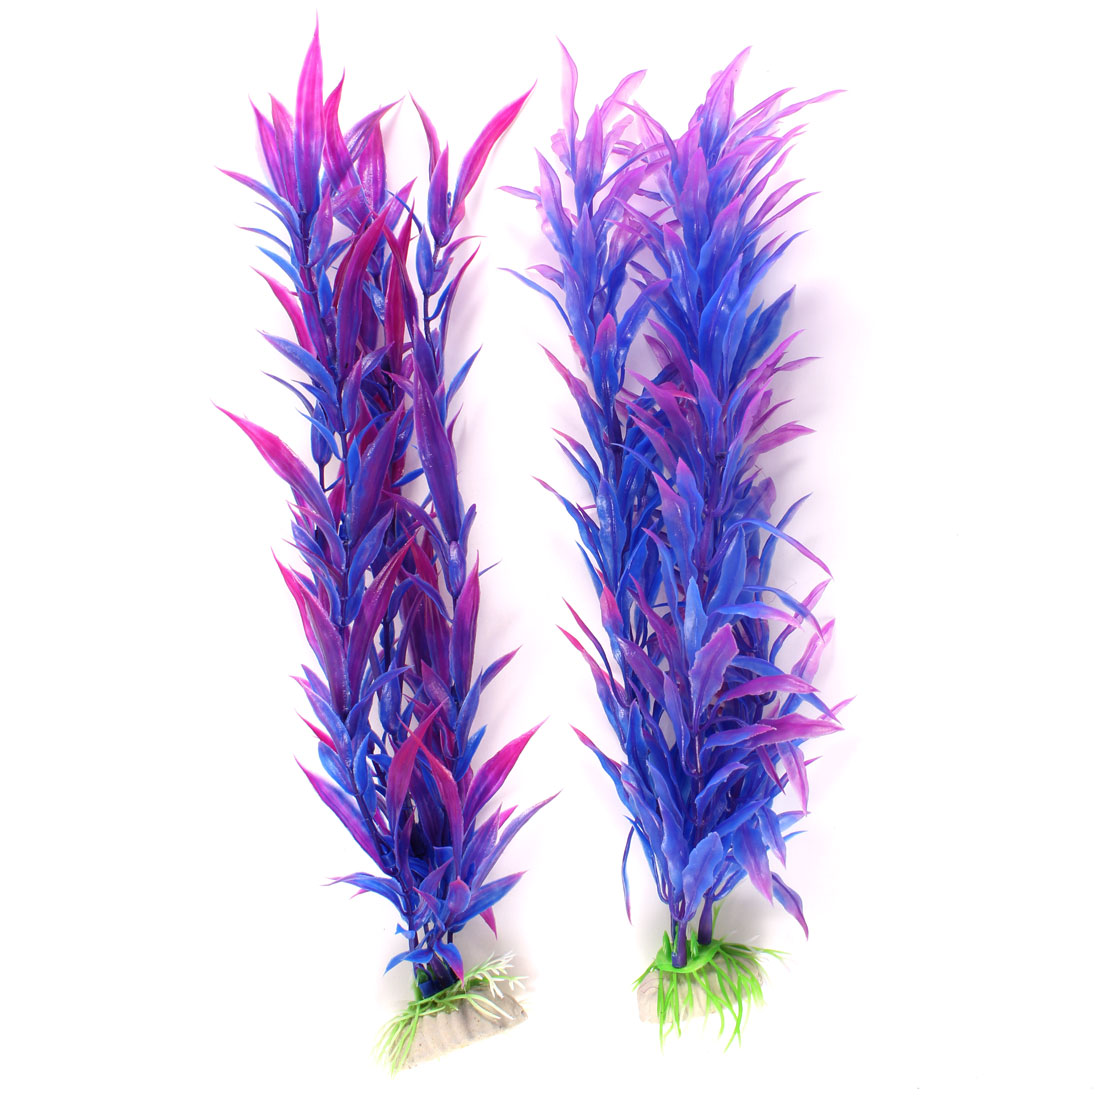 "2 Pcs 11"" High Fuchsia Blue Man-made Plastic Water Plants for Fish Tank"